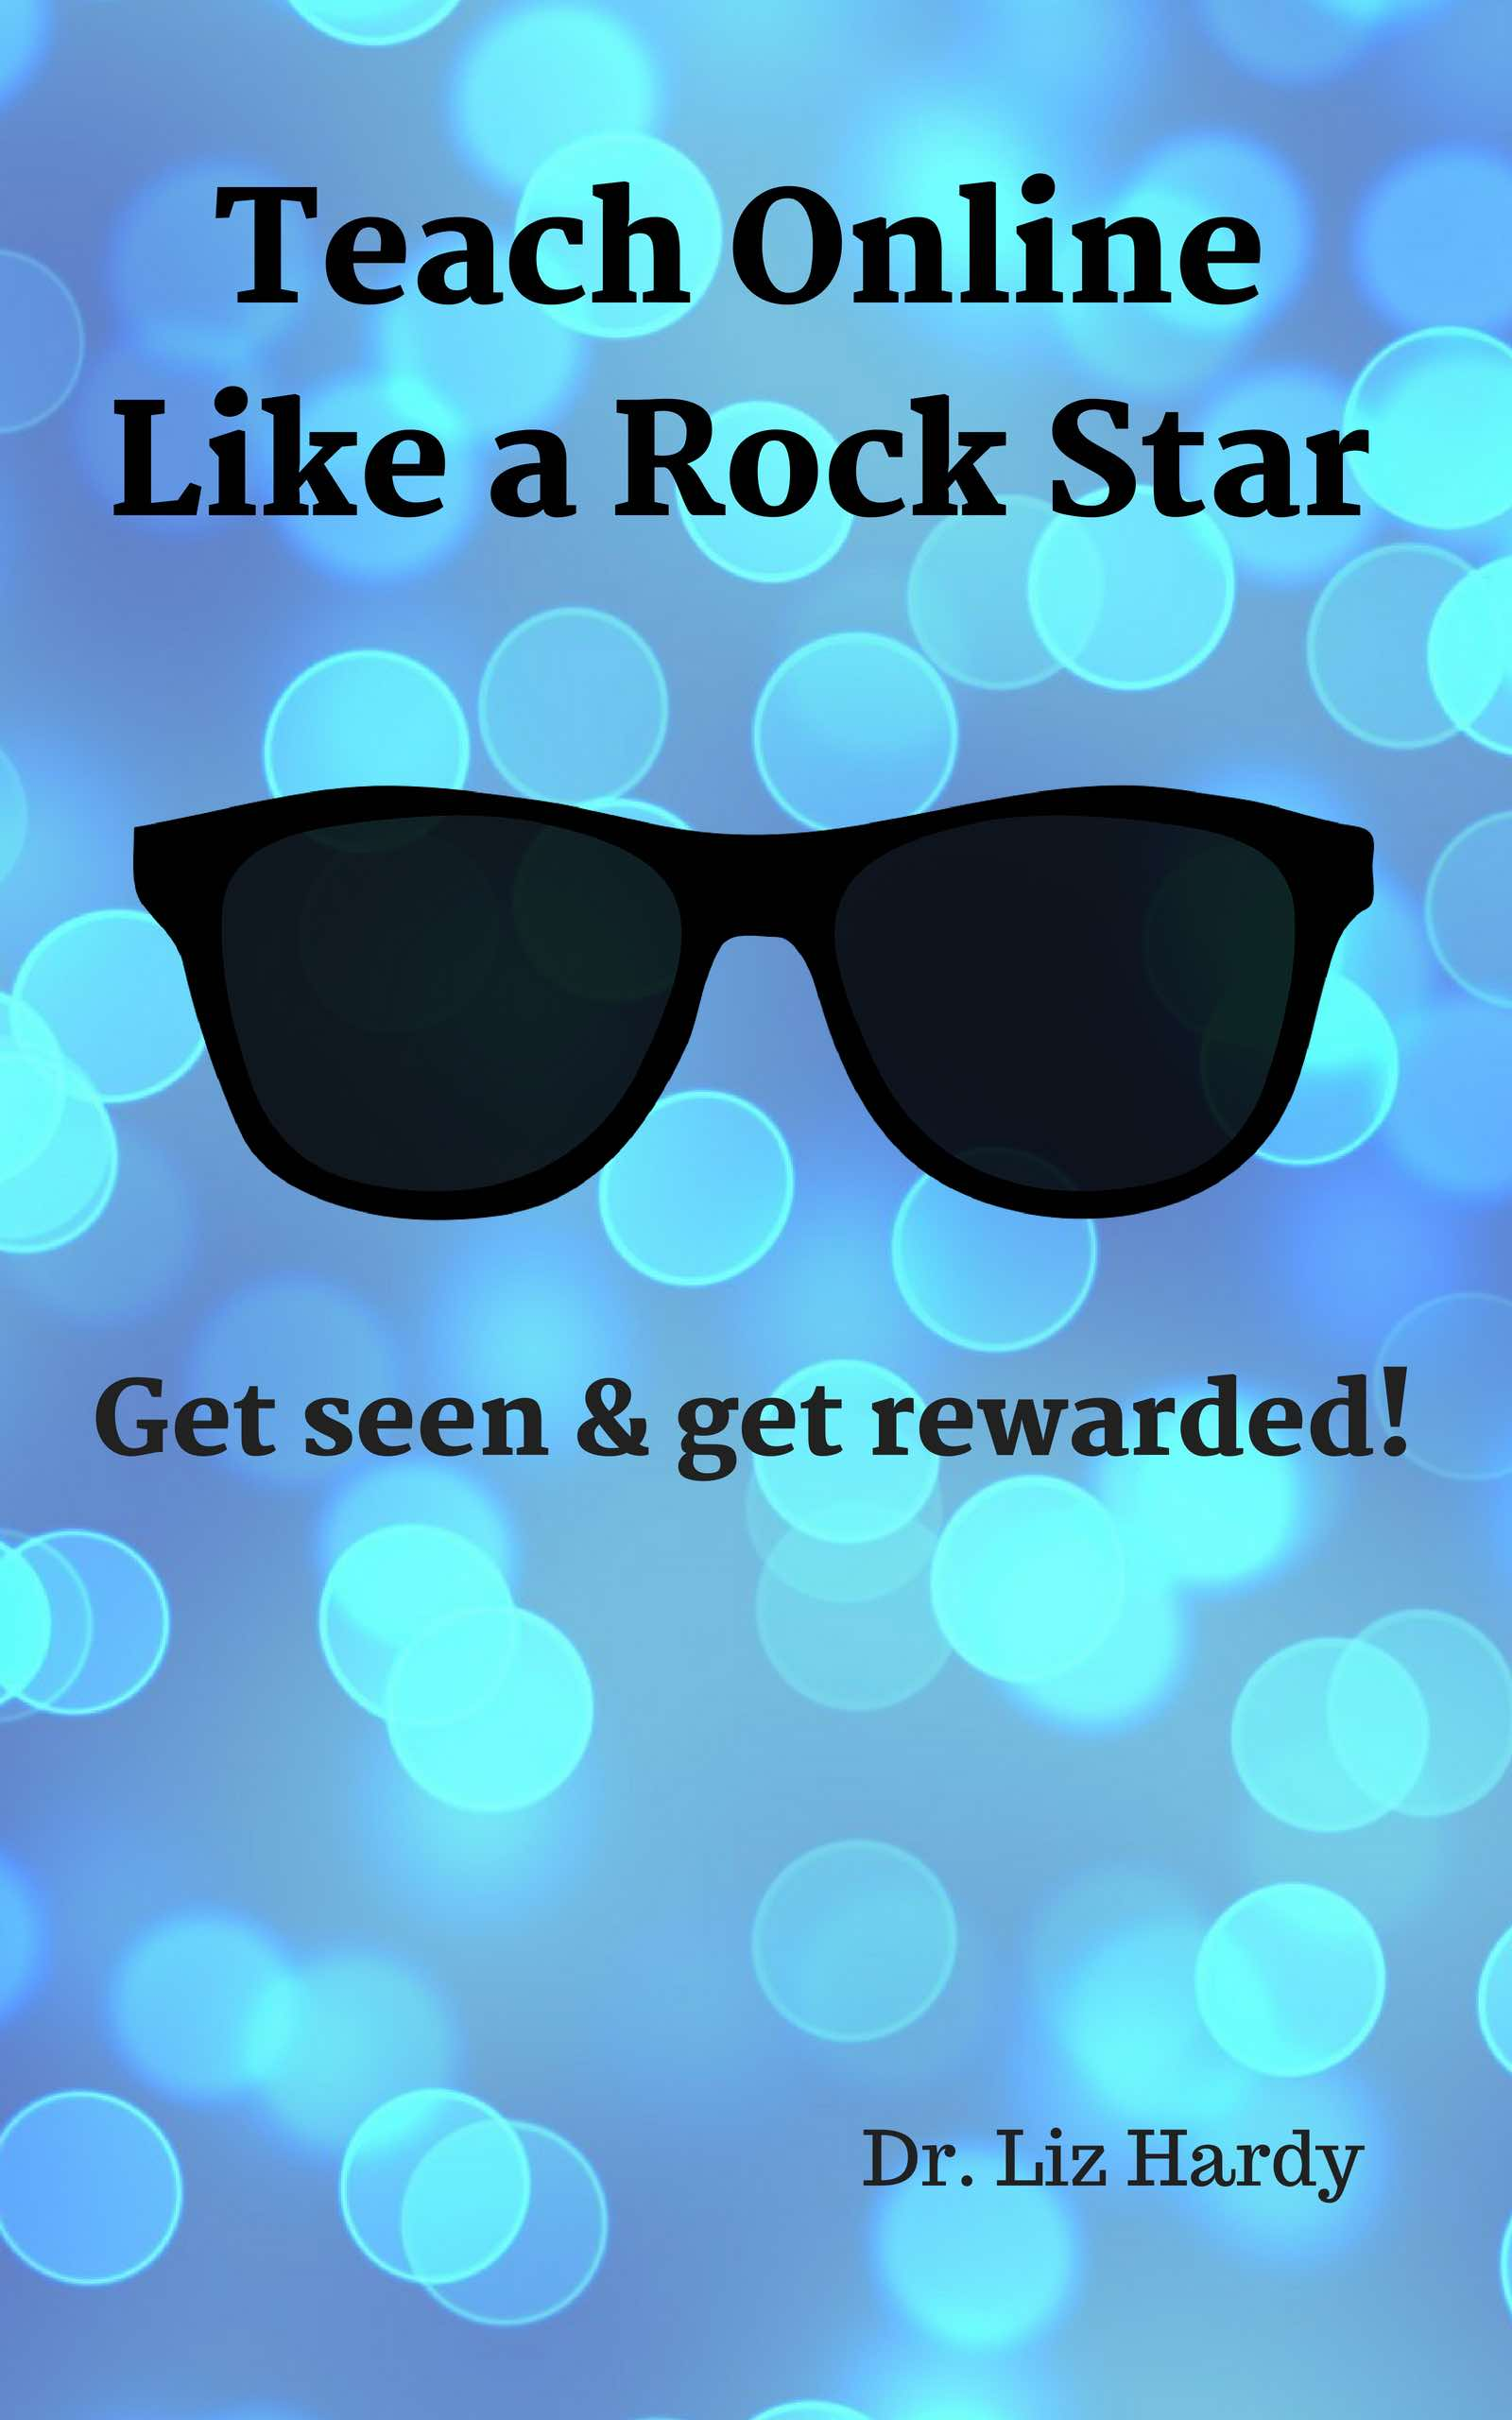 Teach Online Like a Rock Star cover